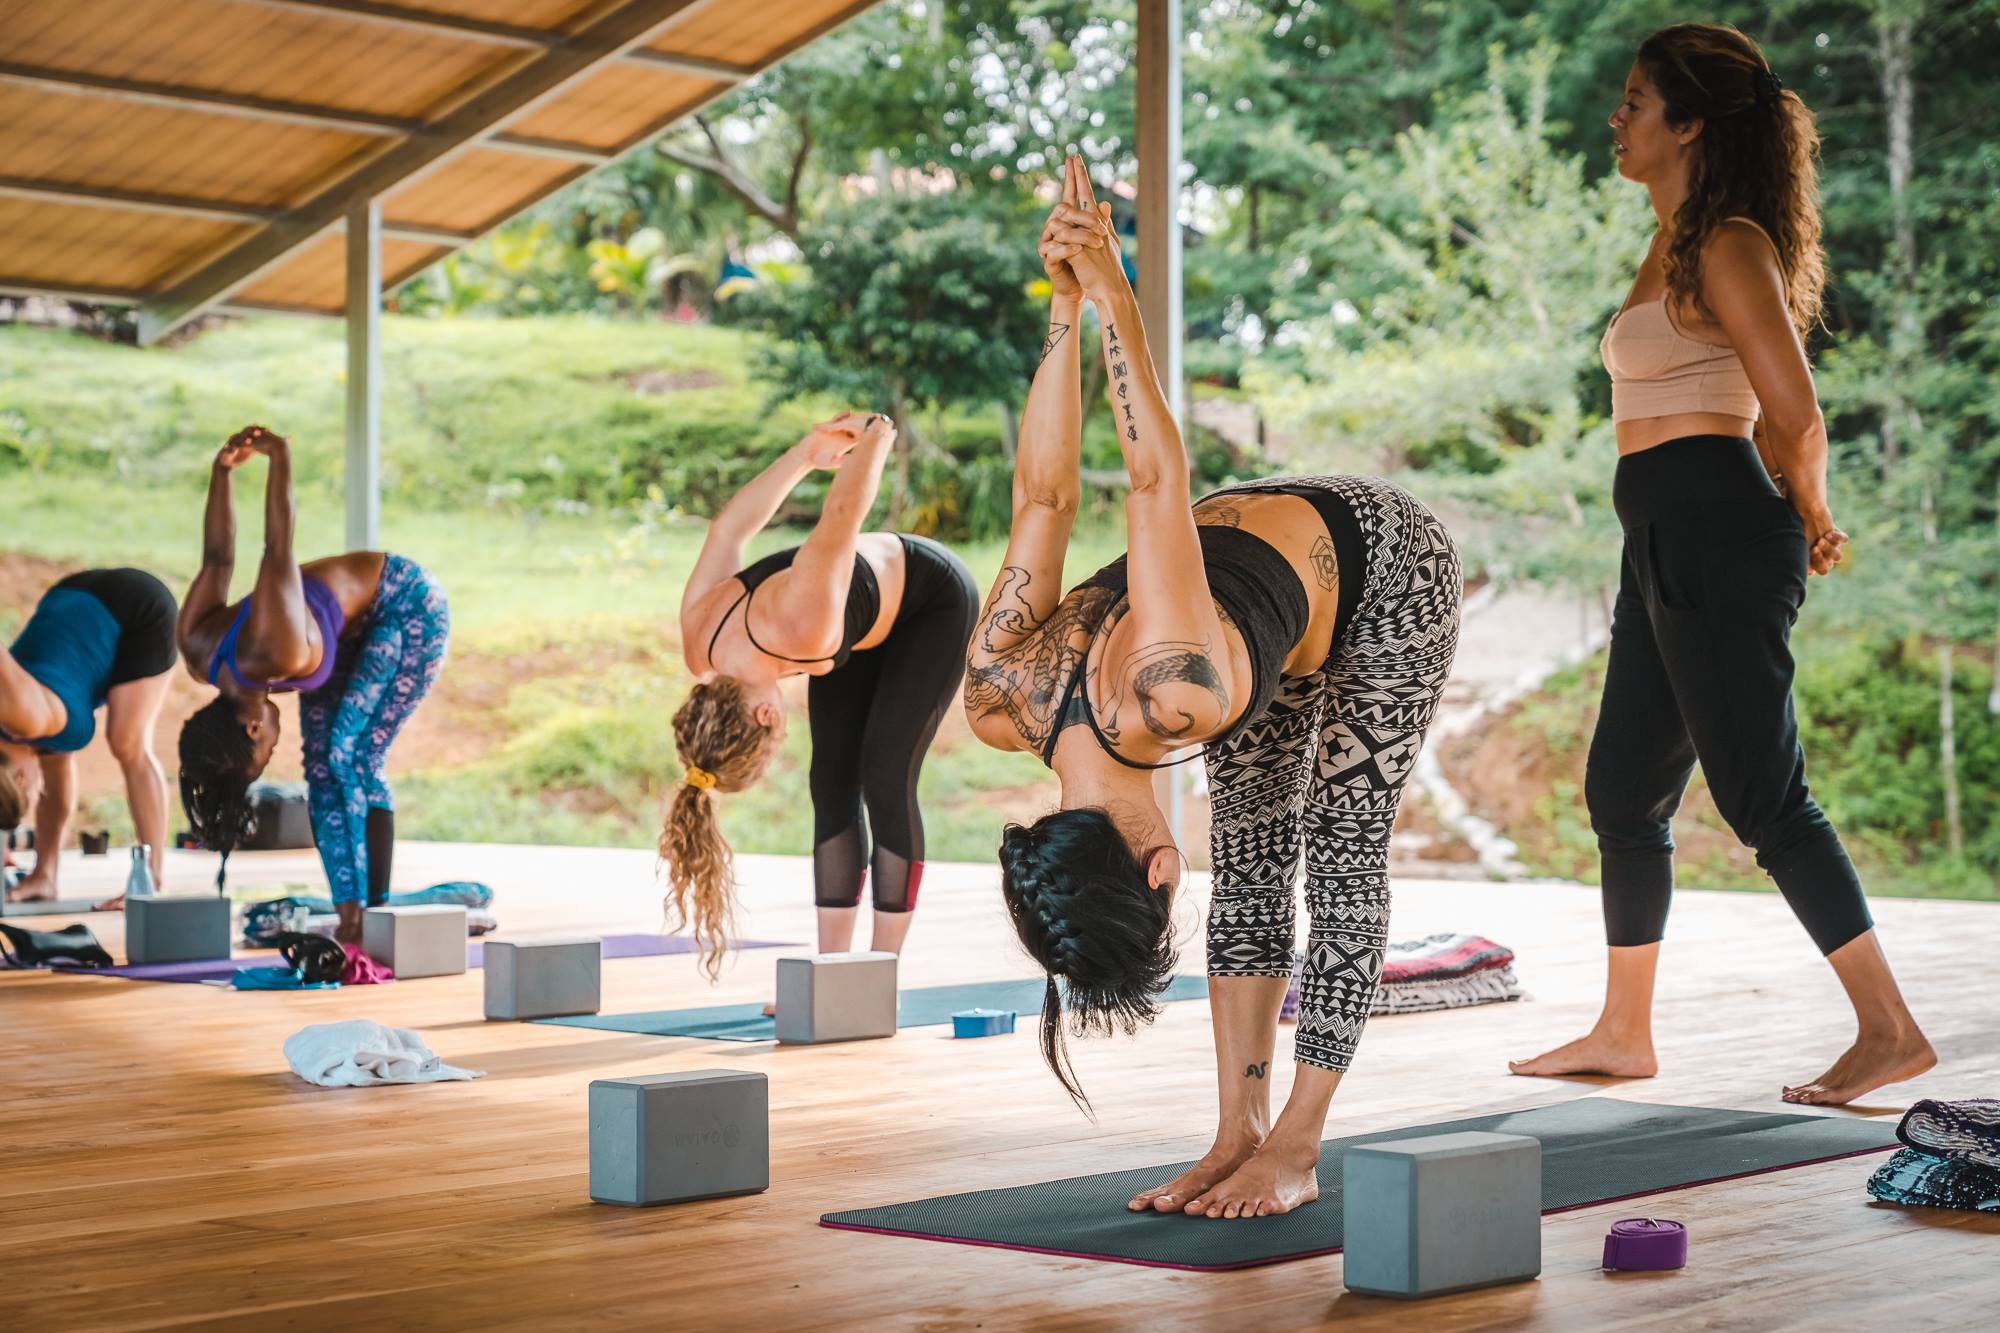 Trainings - Read about our Yoga Alliance certified 200-HR Yoga Teacher Training Immersion in paradise.